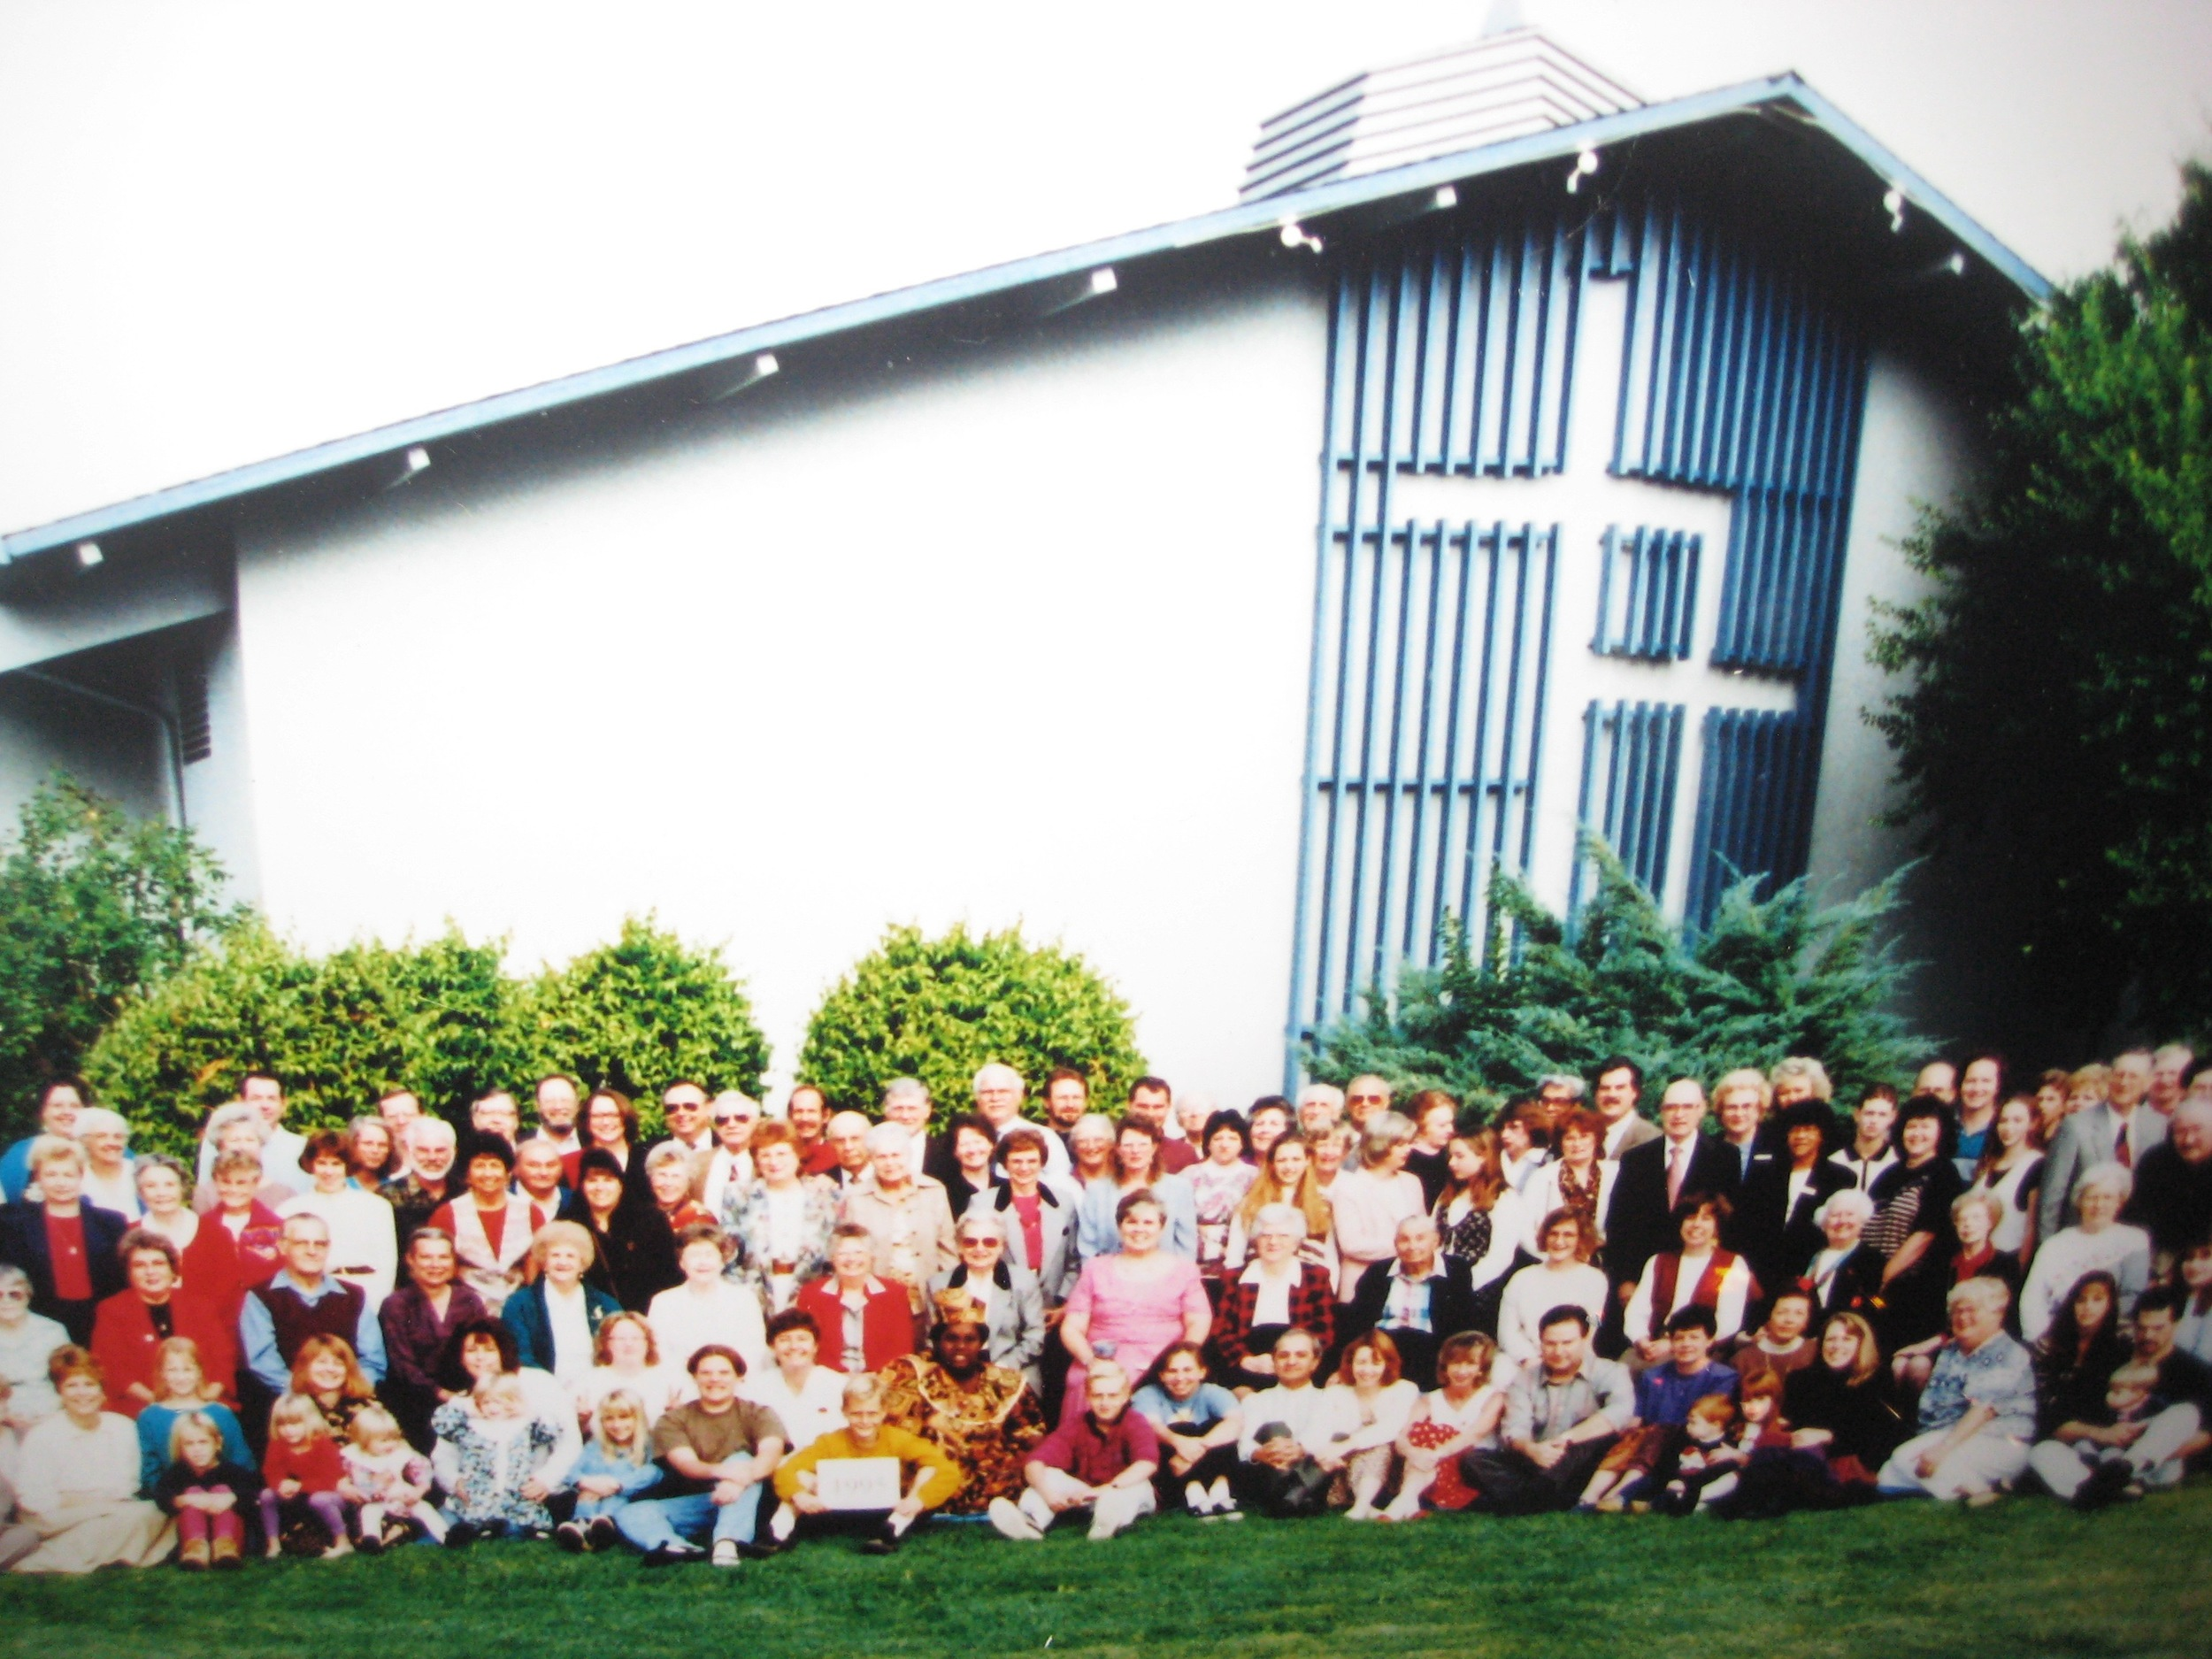 Our church family in the 1990s.